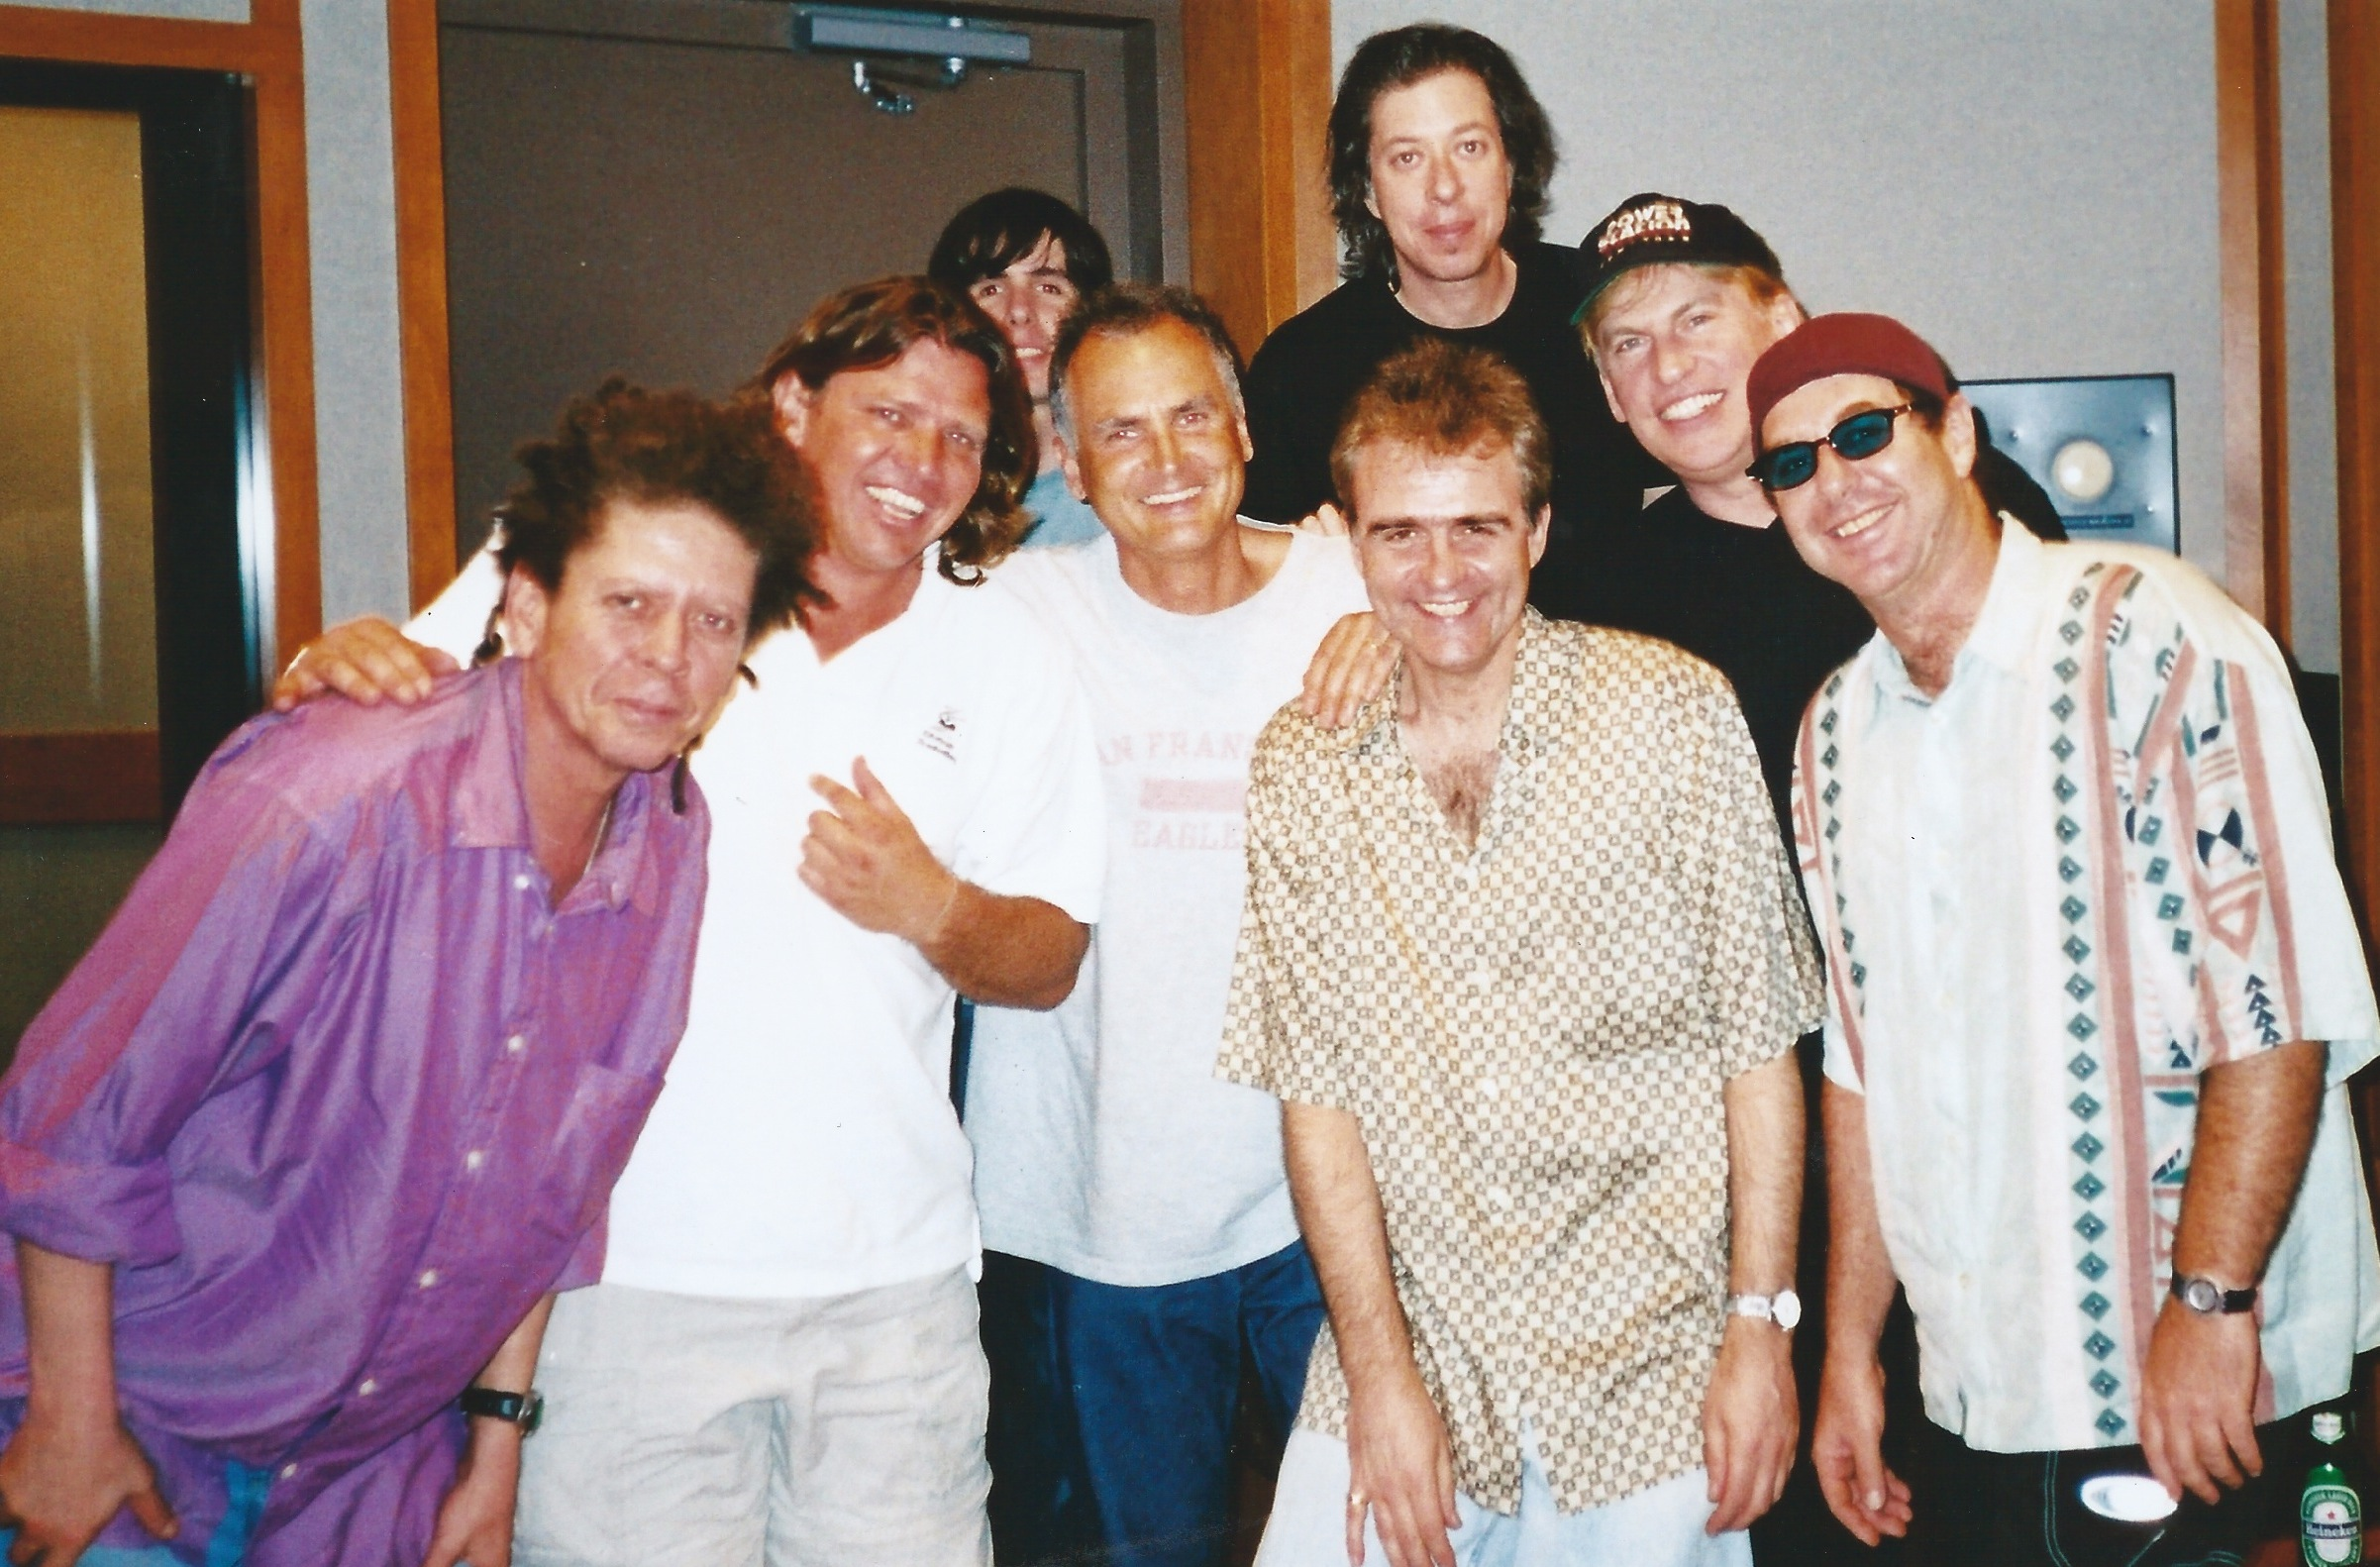 Steve in studio recording Beyond the Blue with (from left) Blondie Chaplin, Kevin Shirley, Steve, Keith Lentin, Adam Holzman, Pat Thrall and Anton Fig.